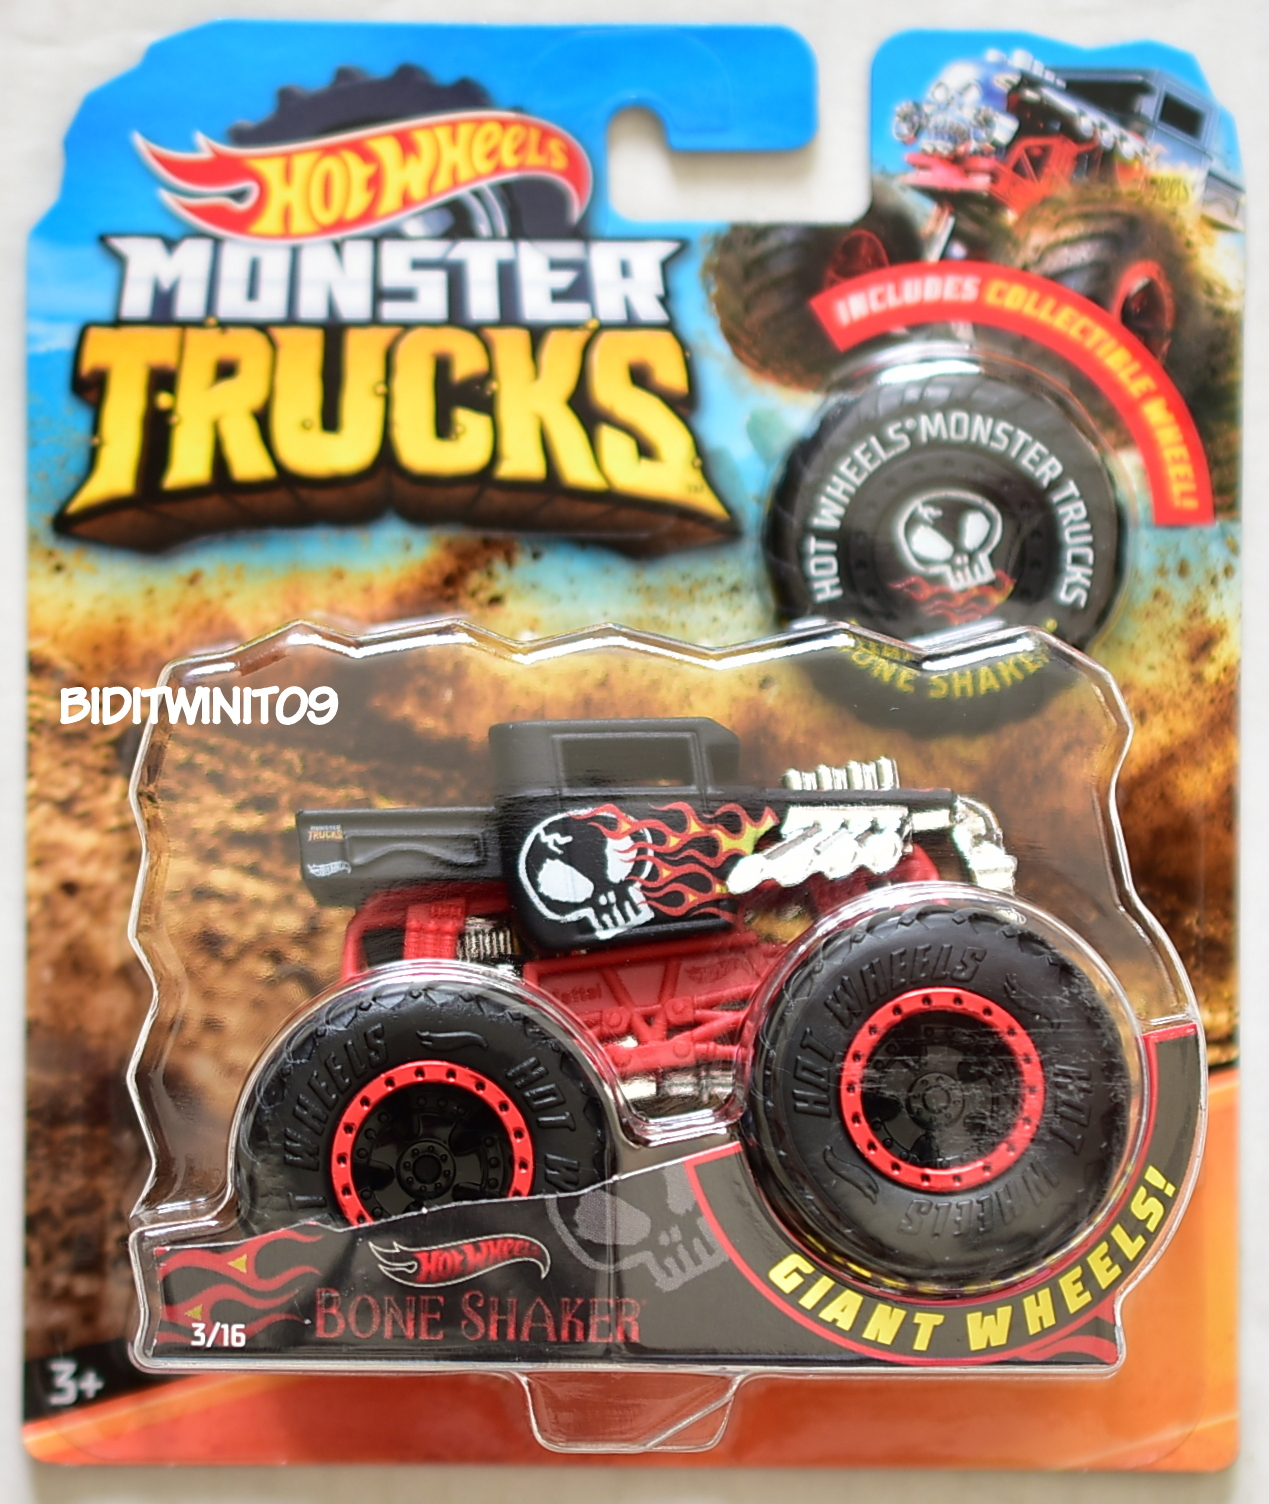 HOT WHEELS 2018 MONSTER TRUCKS GIANT WHEELS BONE SHAKER #3/16